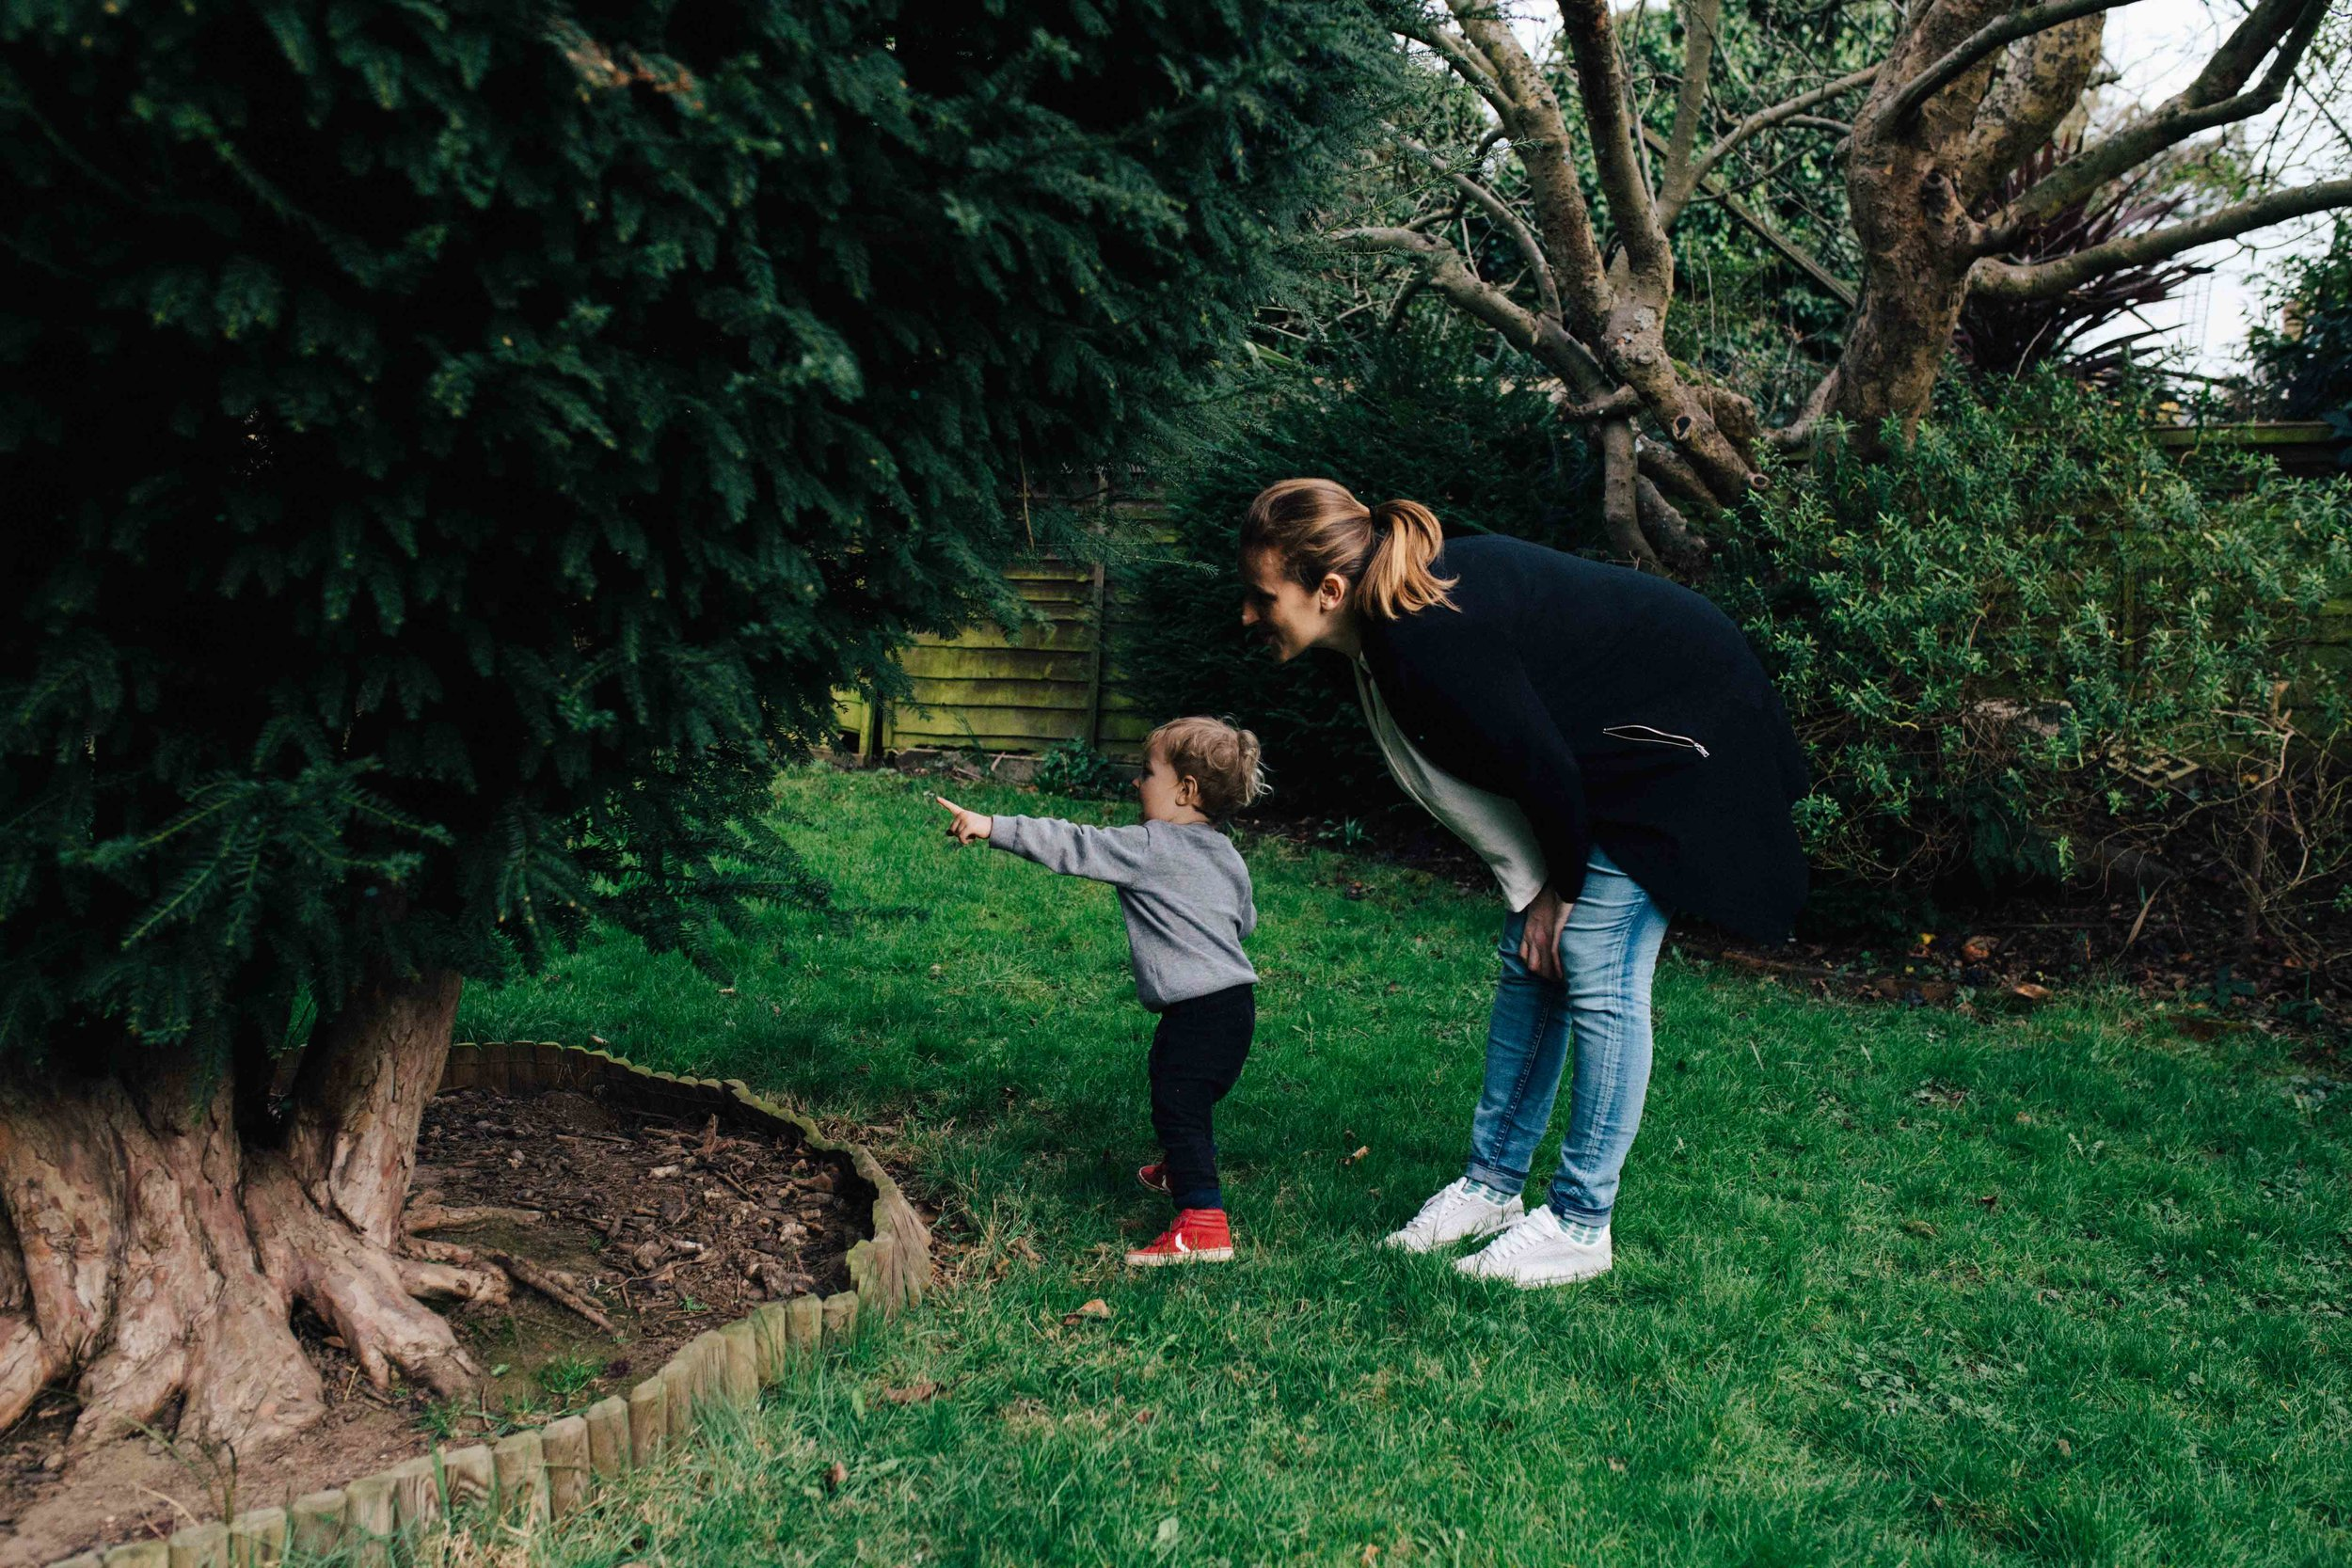 Mother and son in the garden